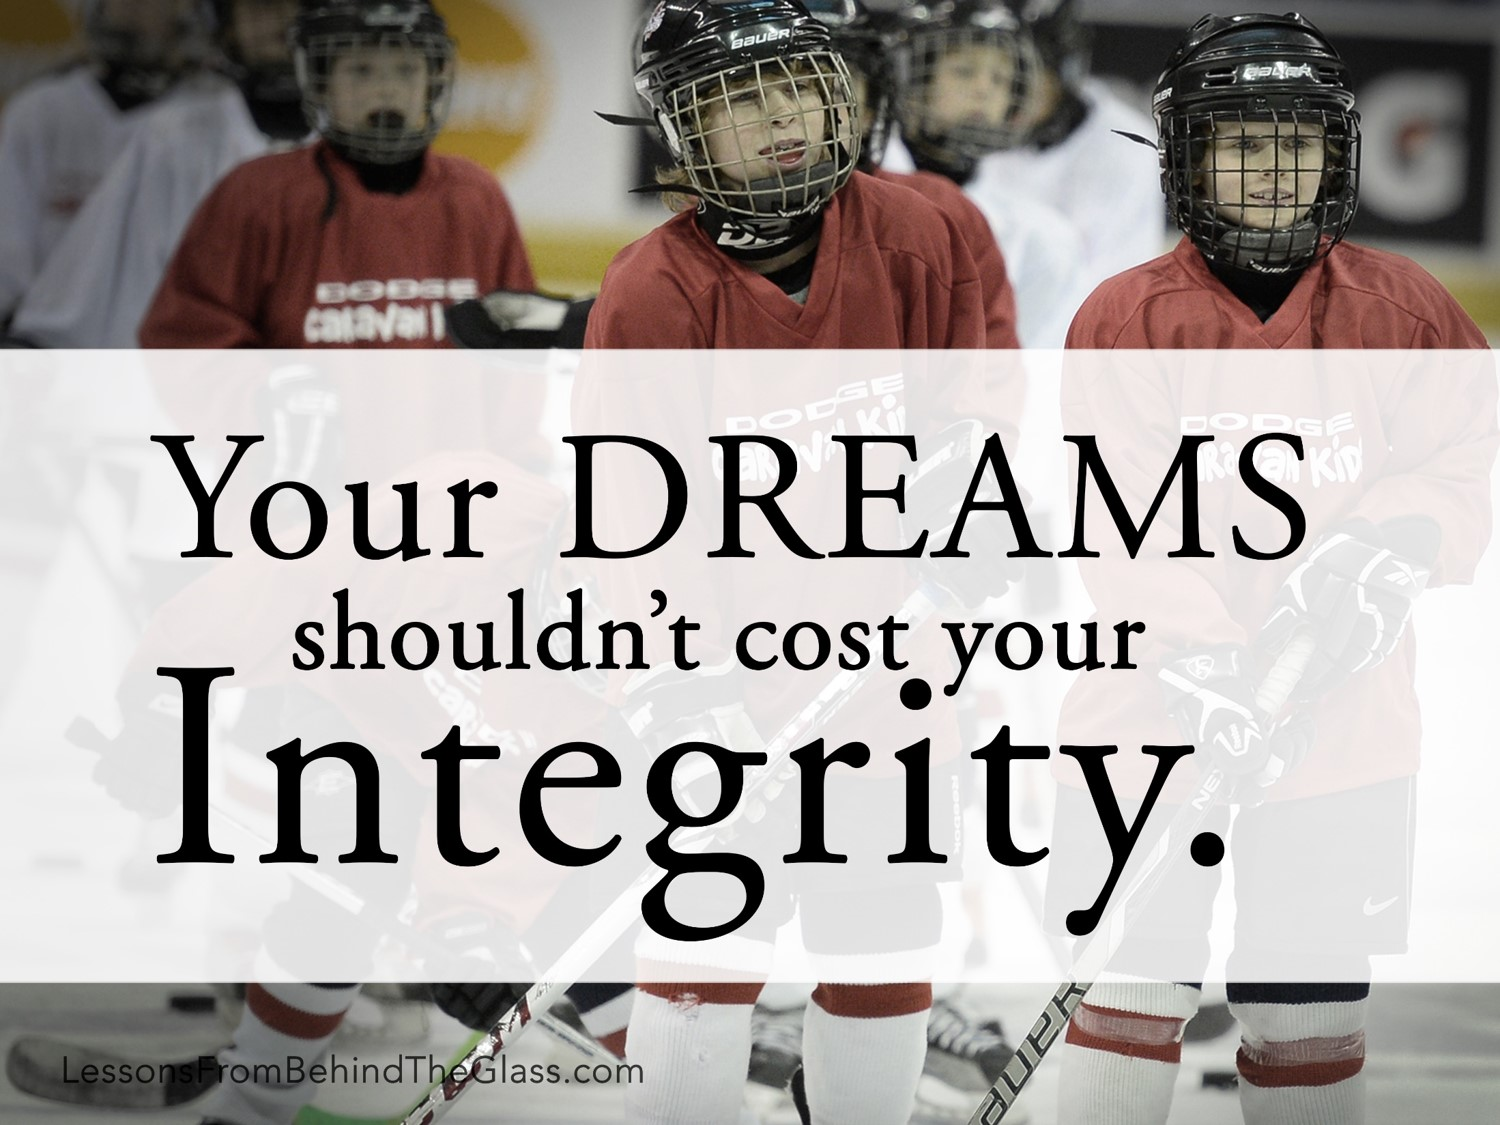 Lesson #9 – Your dreams shouldn't cost your integrity